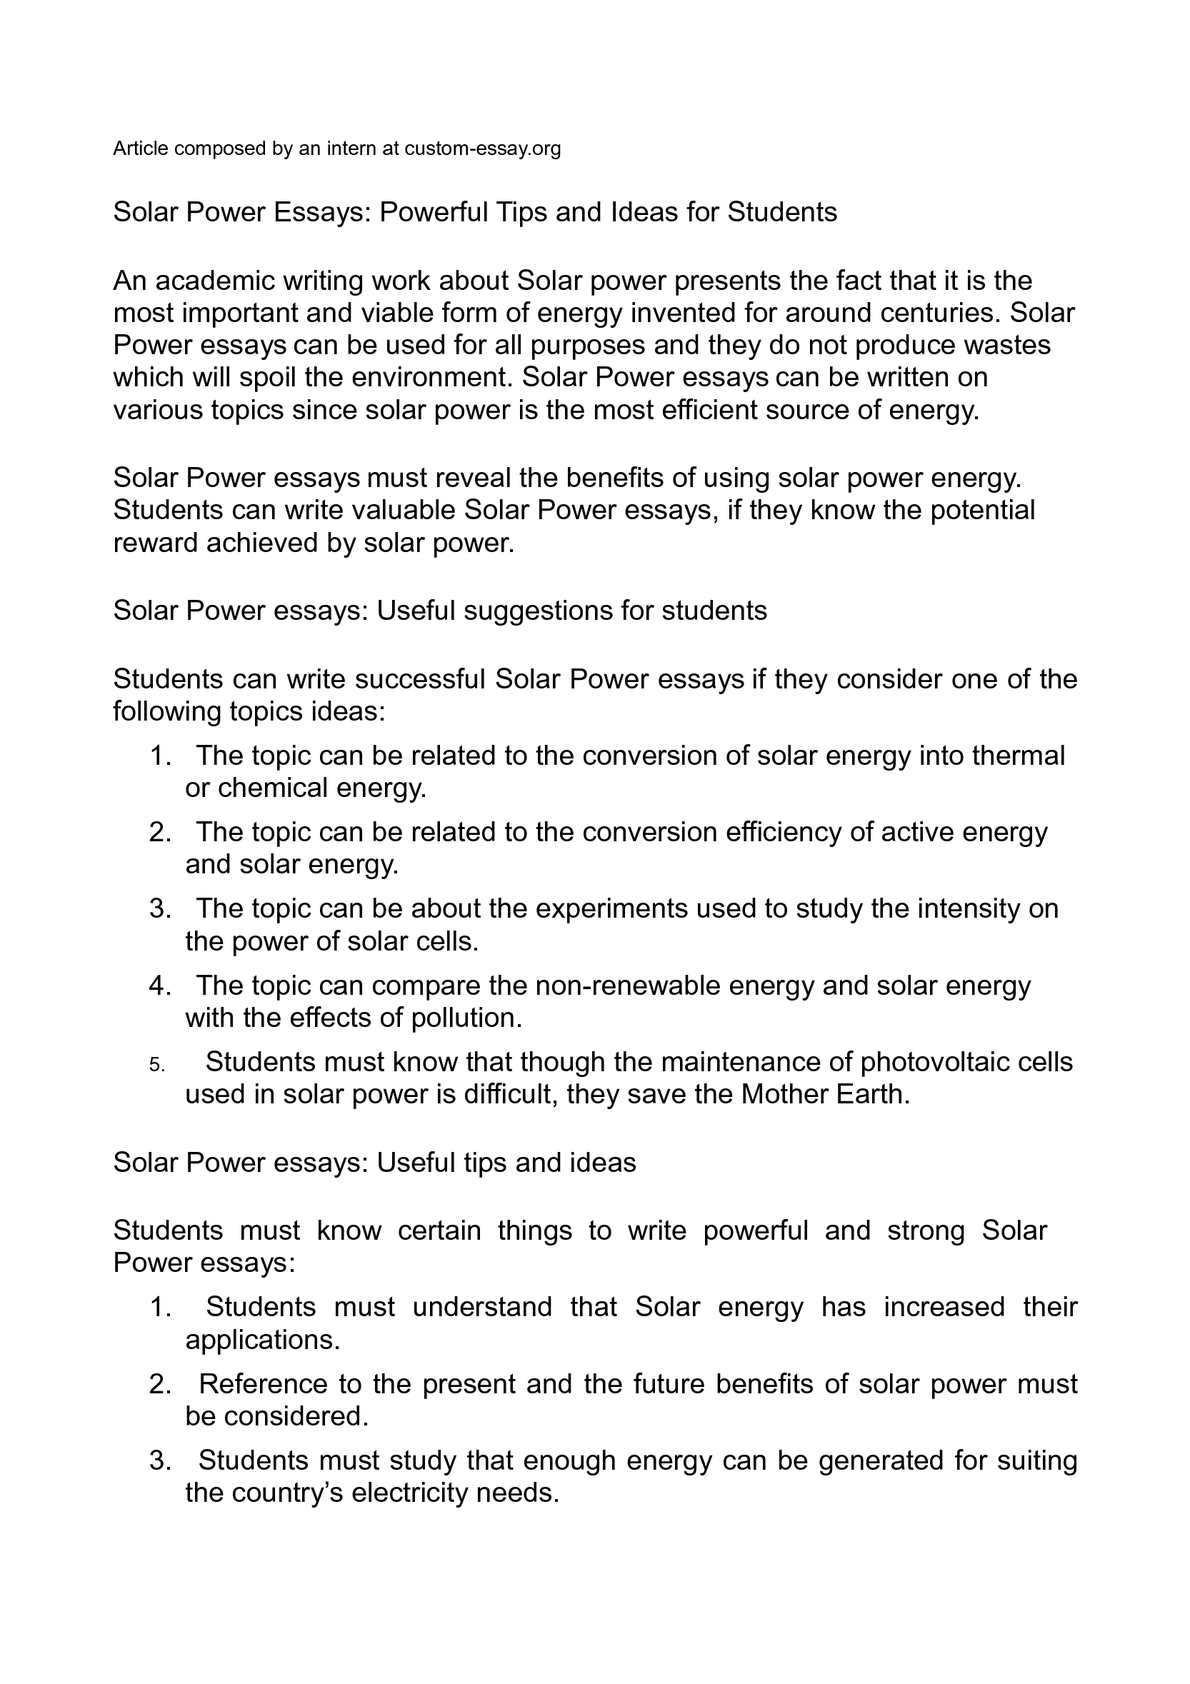 005 P1 Power Essay Shocking Abuse Of Introduction Nuclear Black Topics Full